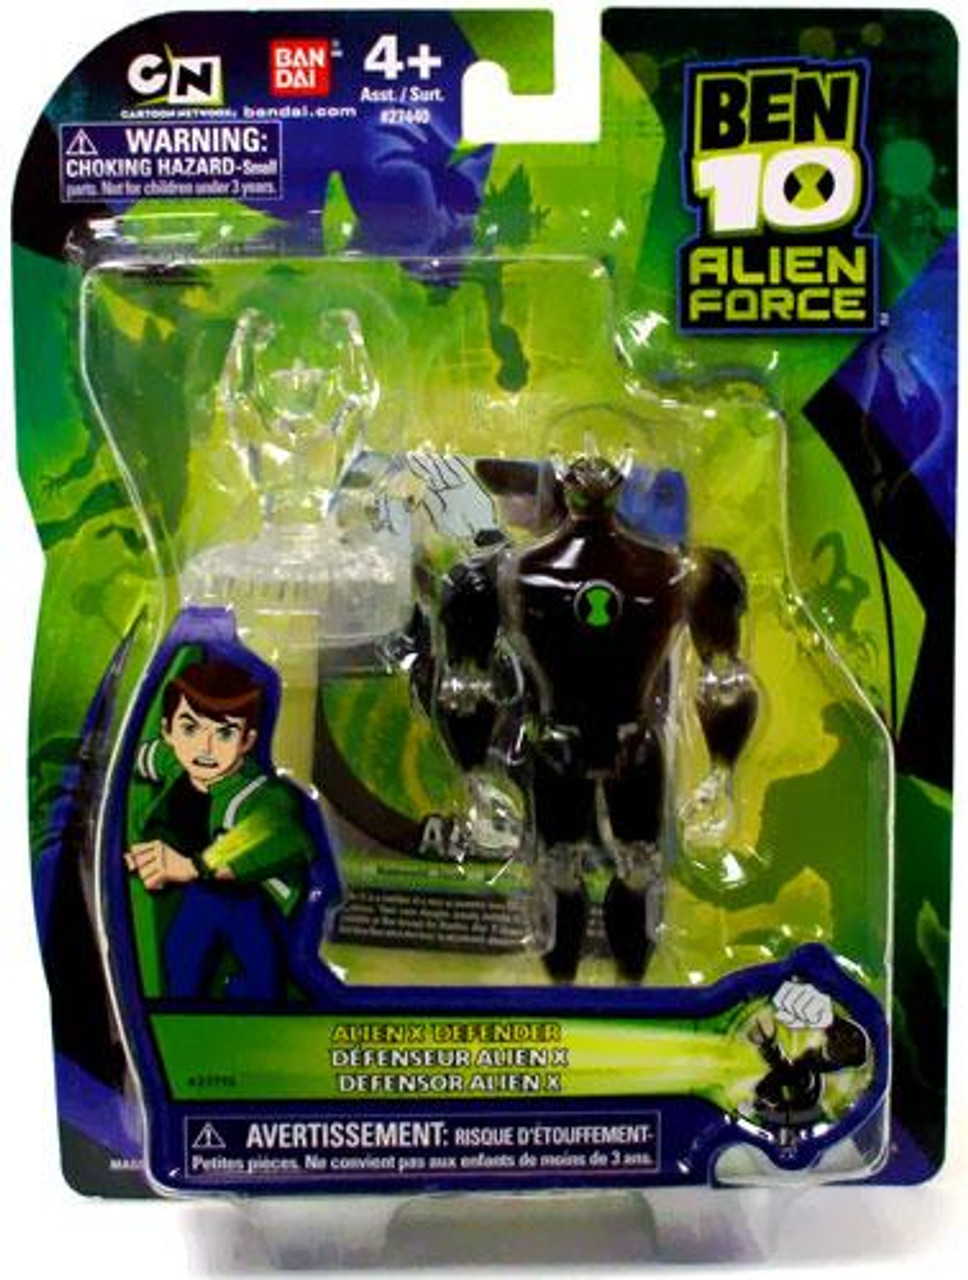 Ben 10 Alien Force Alien X Defender Action Figure